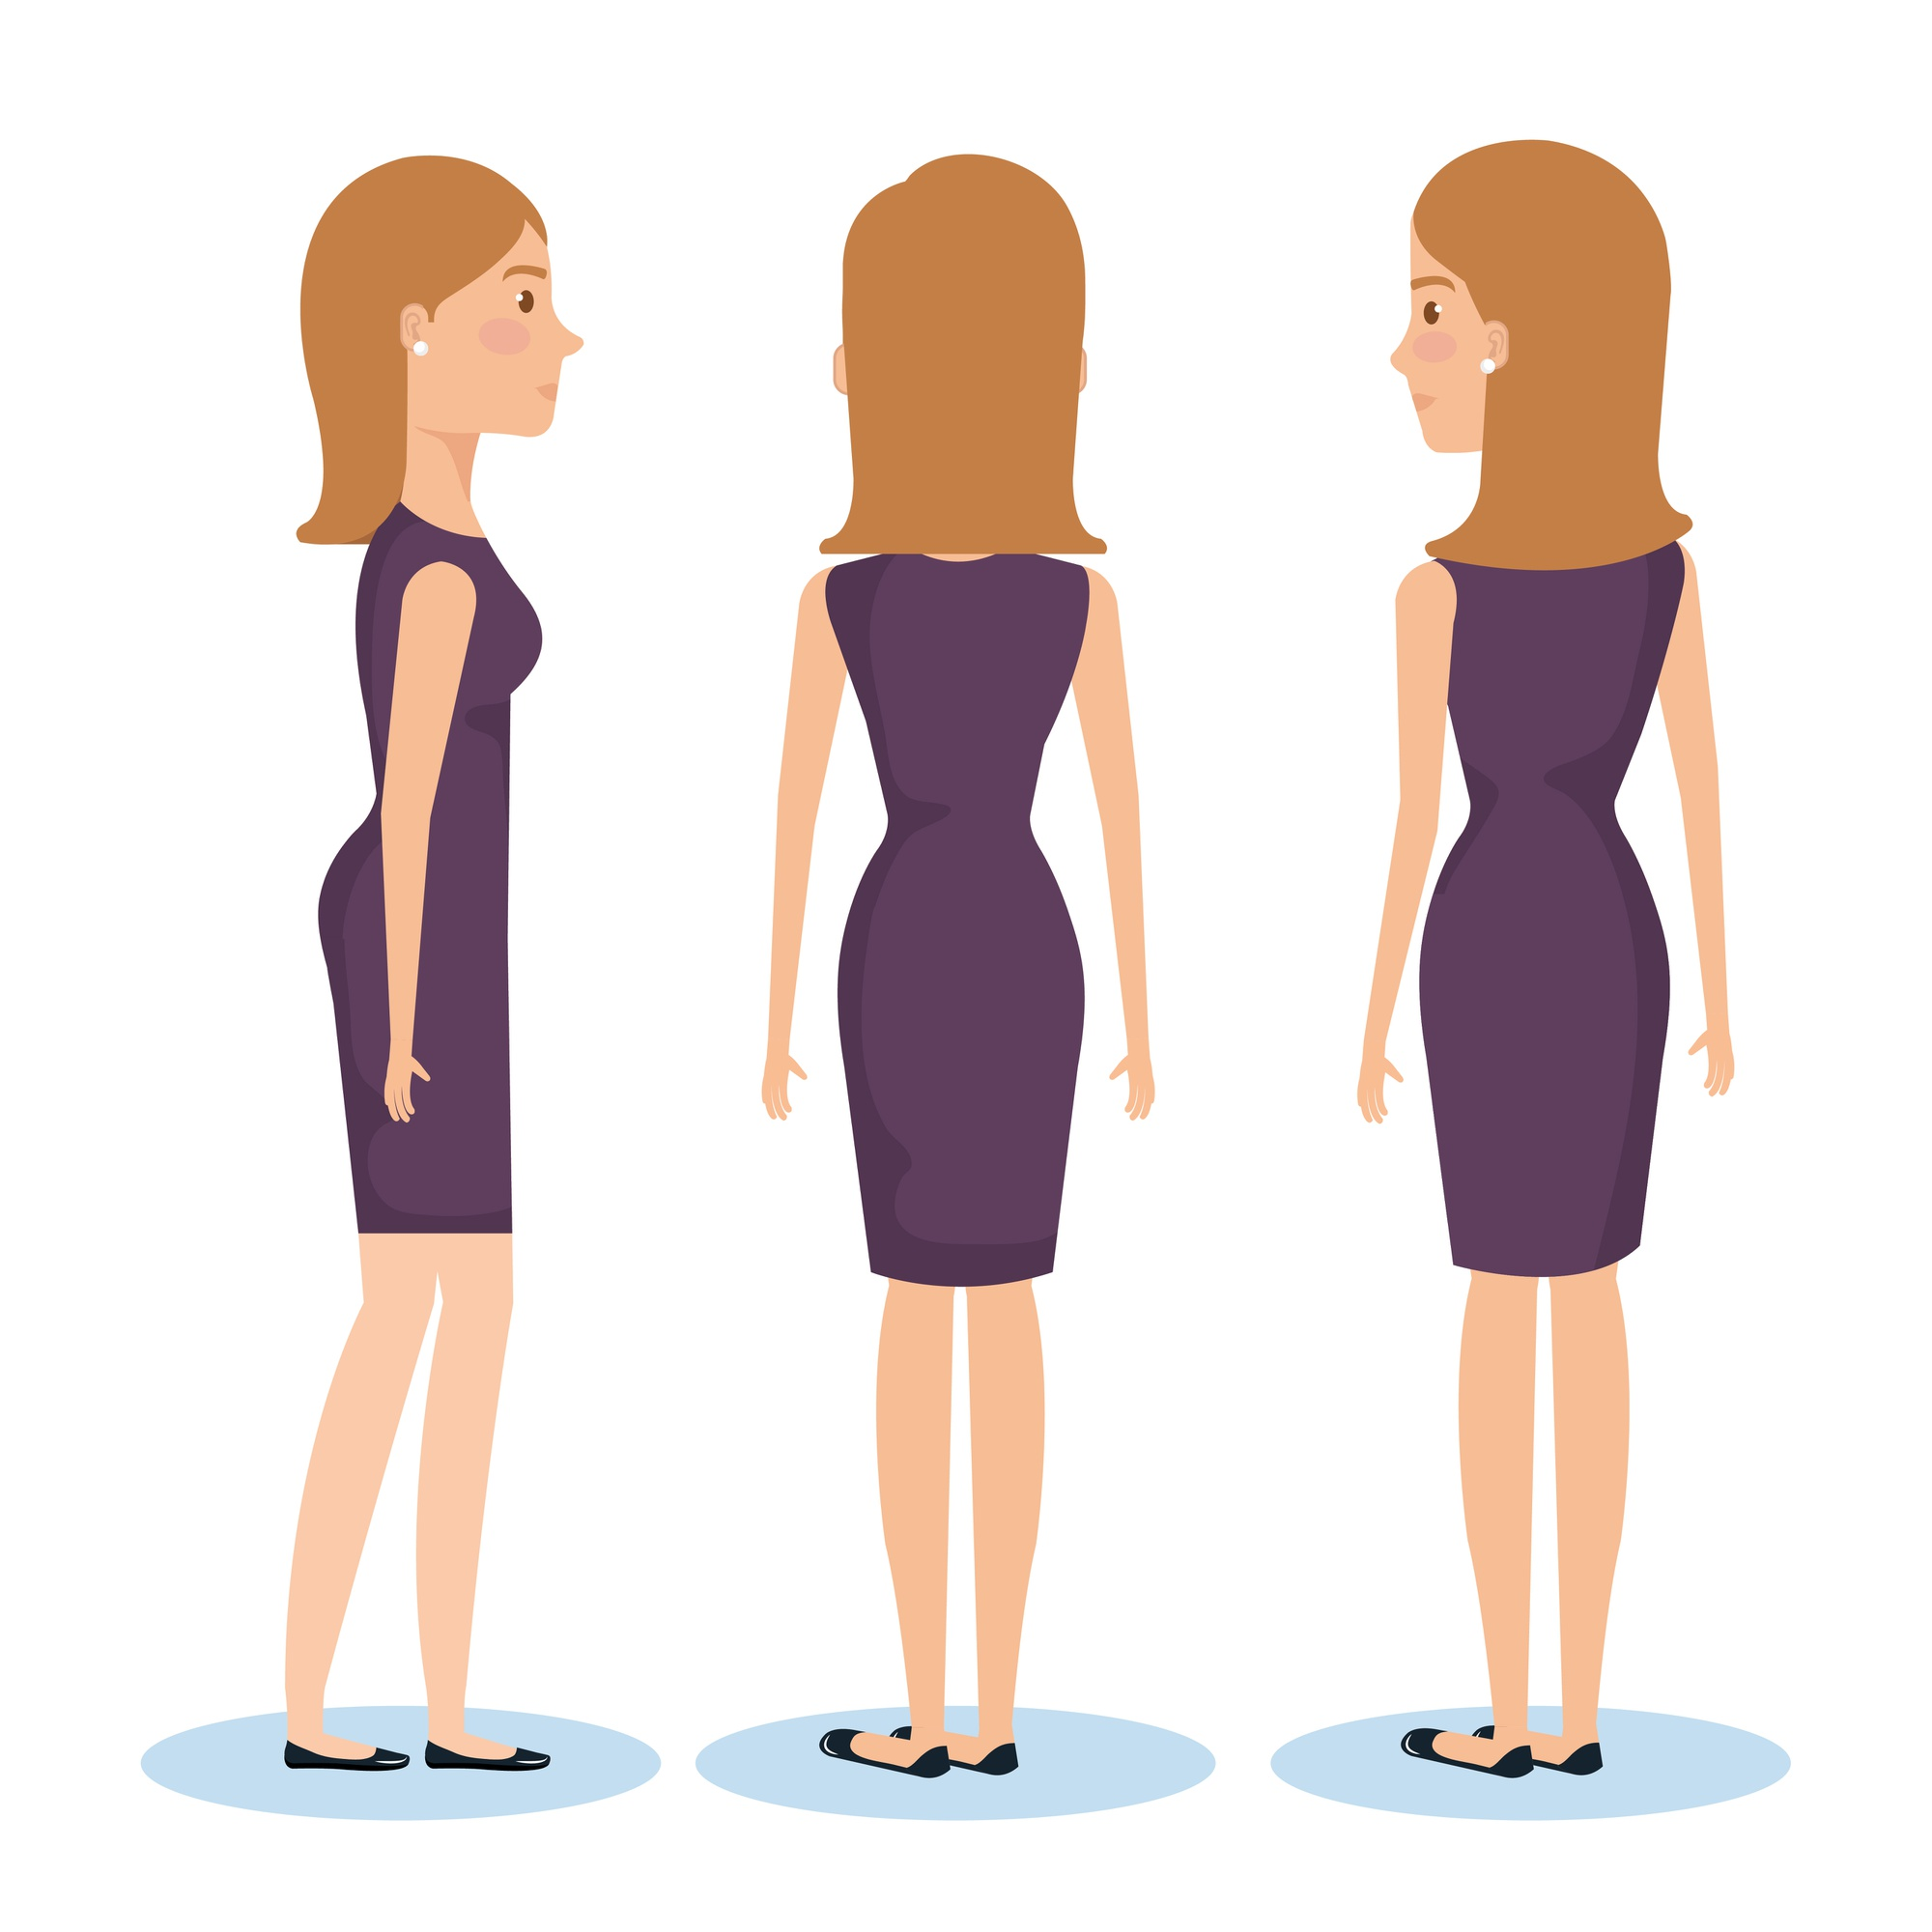 Group of young women poses and styles vector illustration design